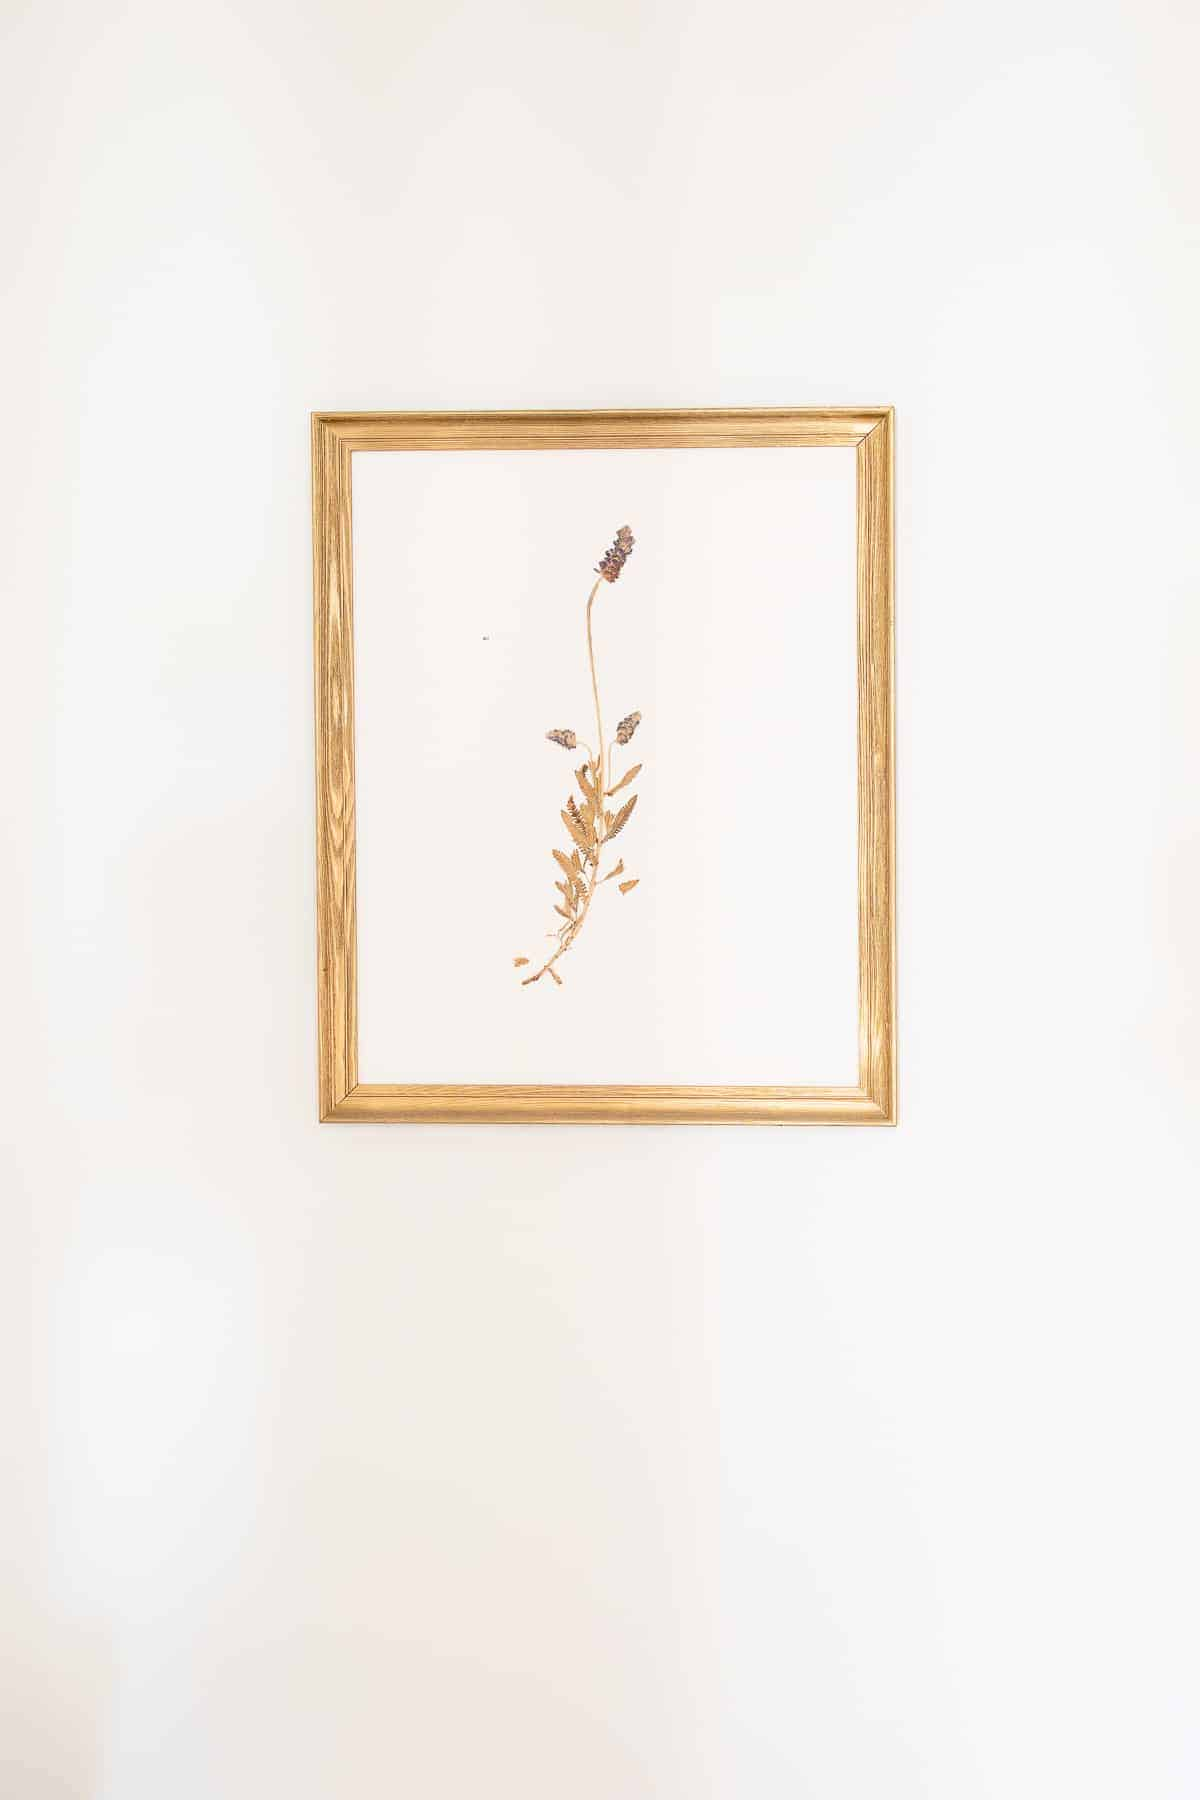 pressed botanical in gold frame hanging on wall